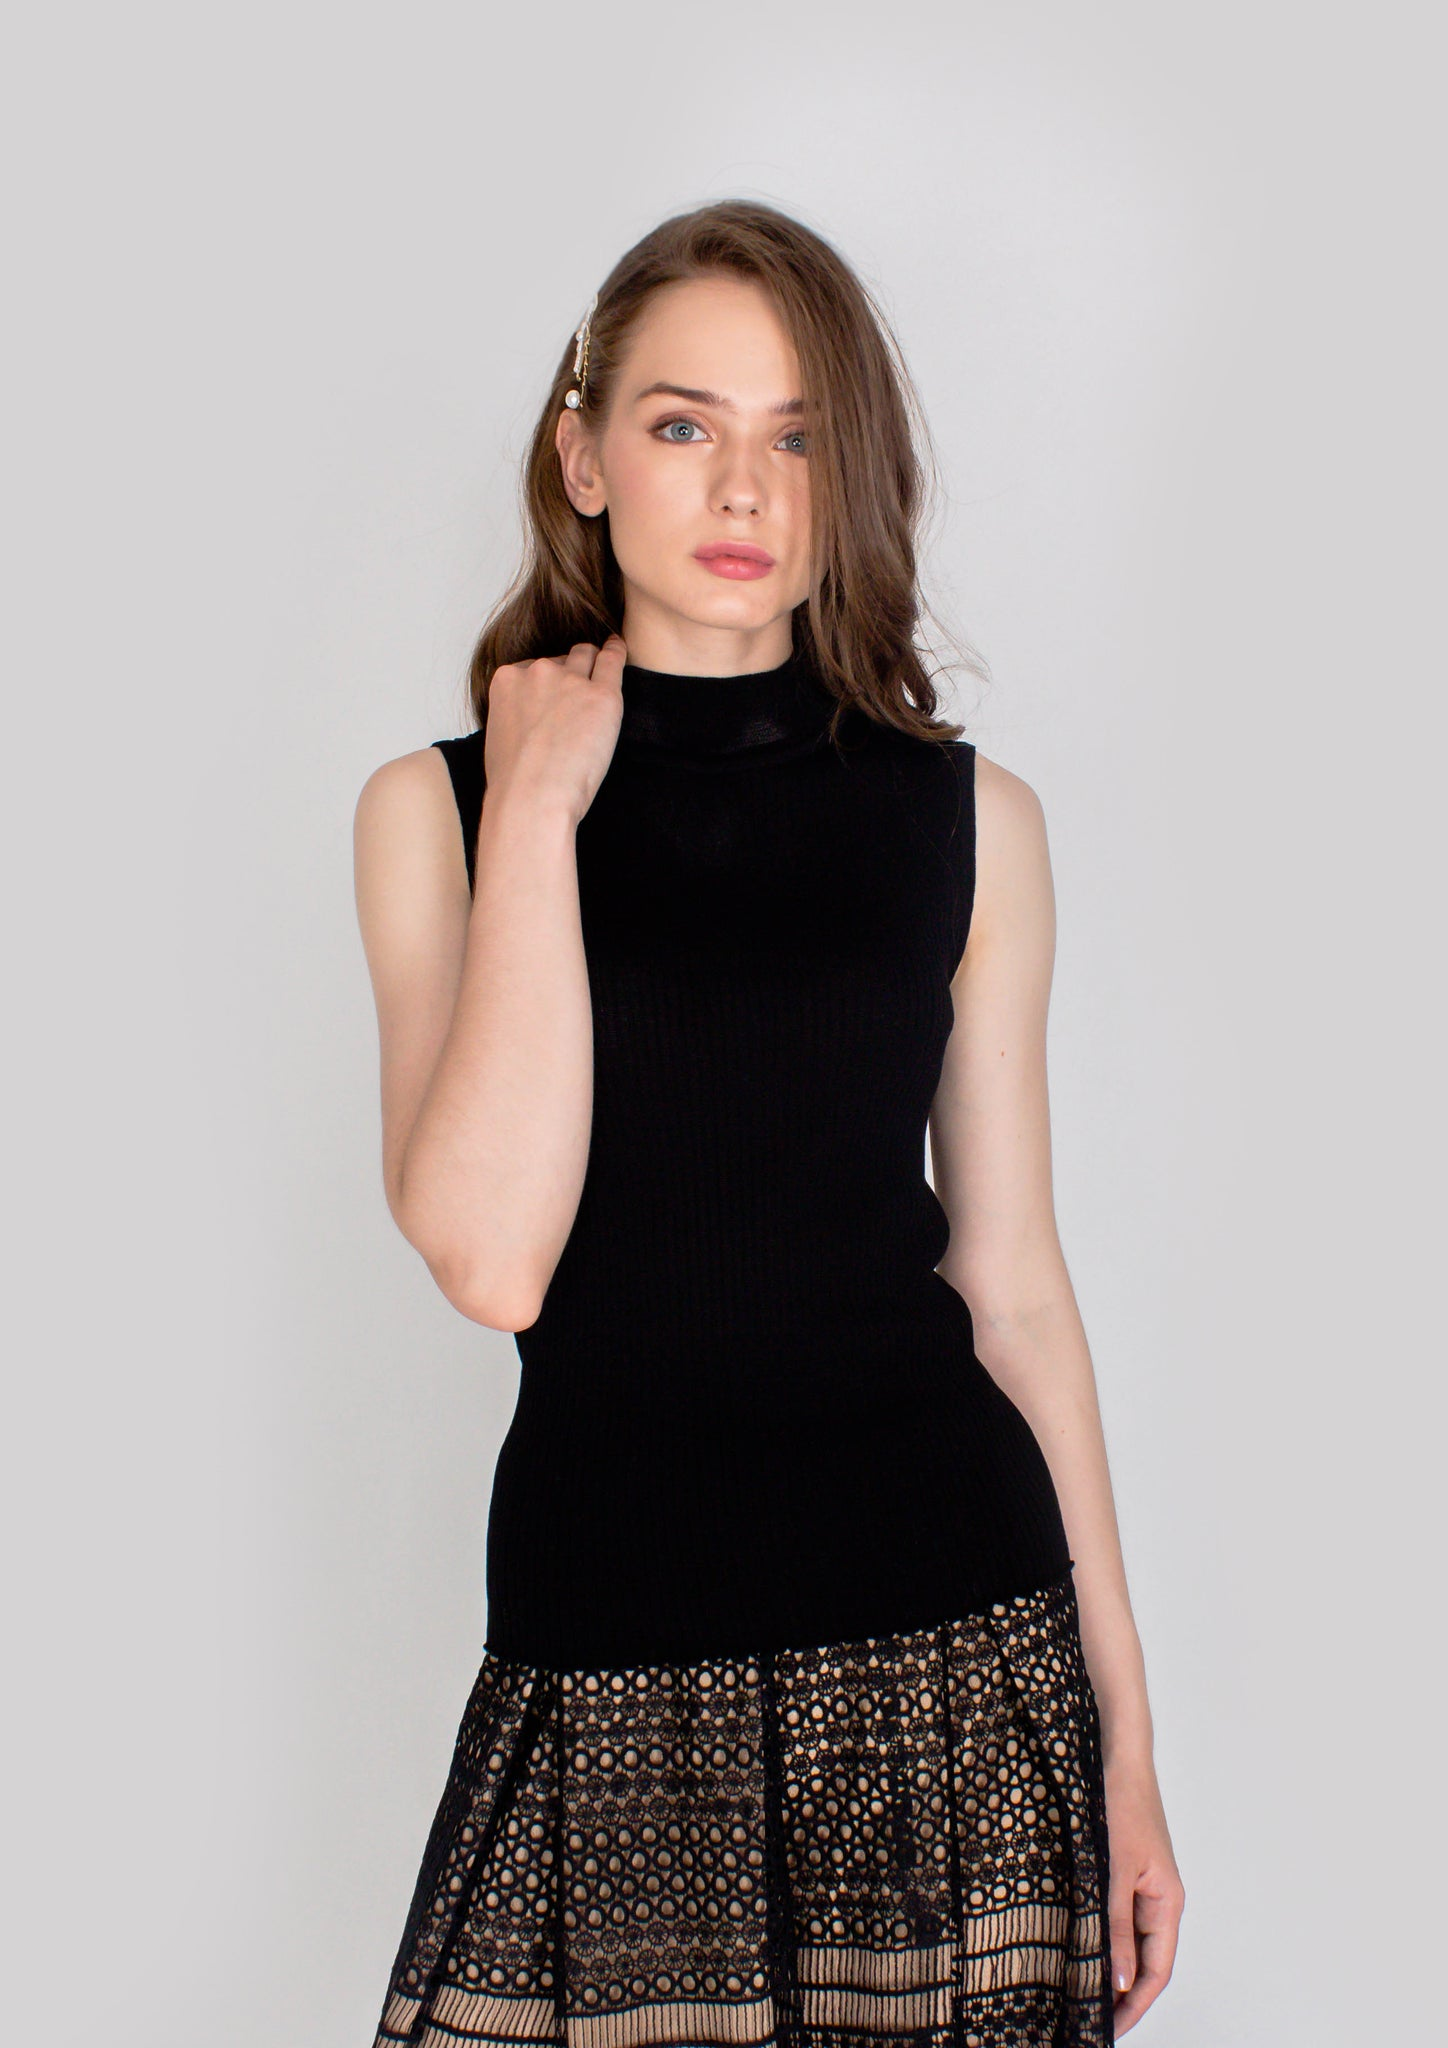 Adrienna Sleeveless Knit Top (Black) - Moxie